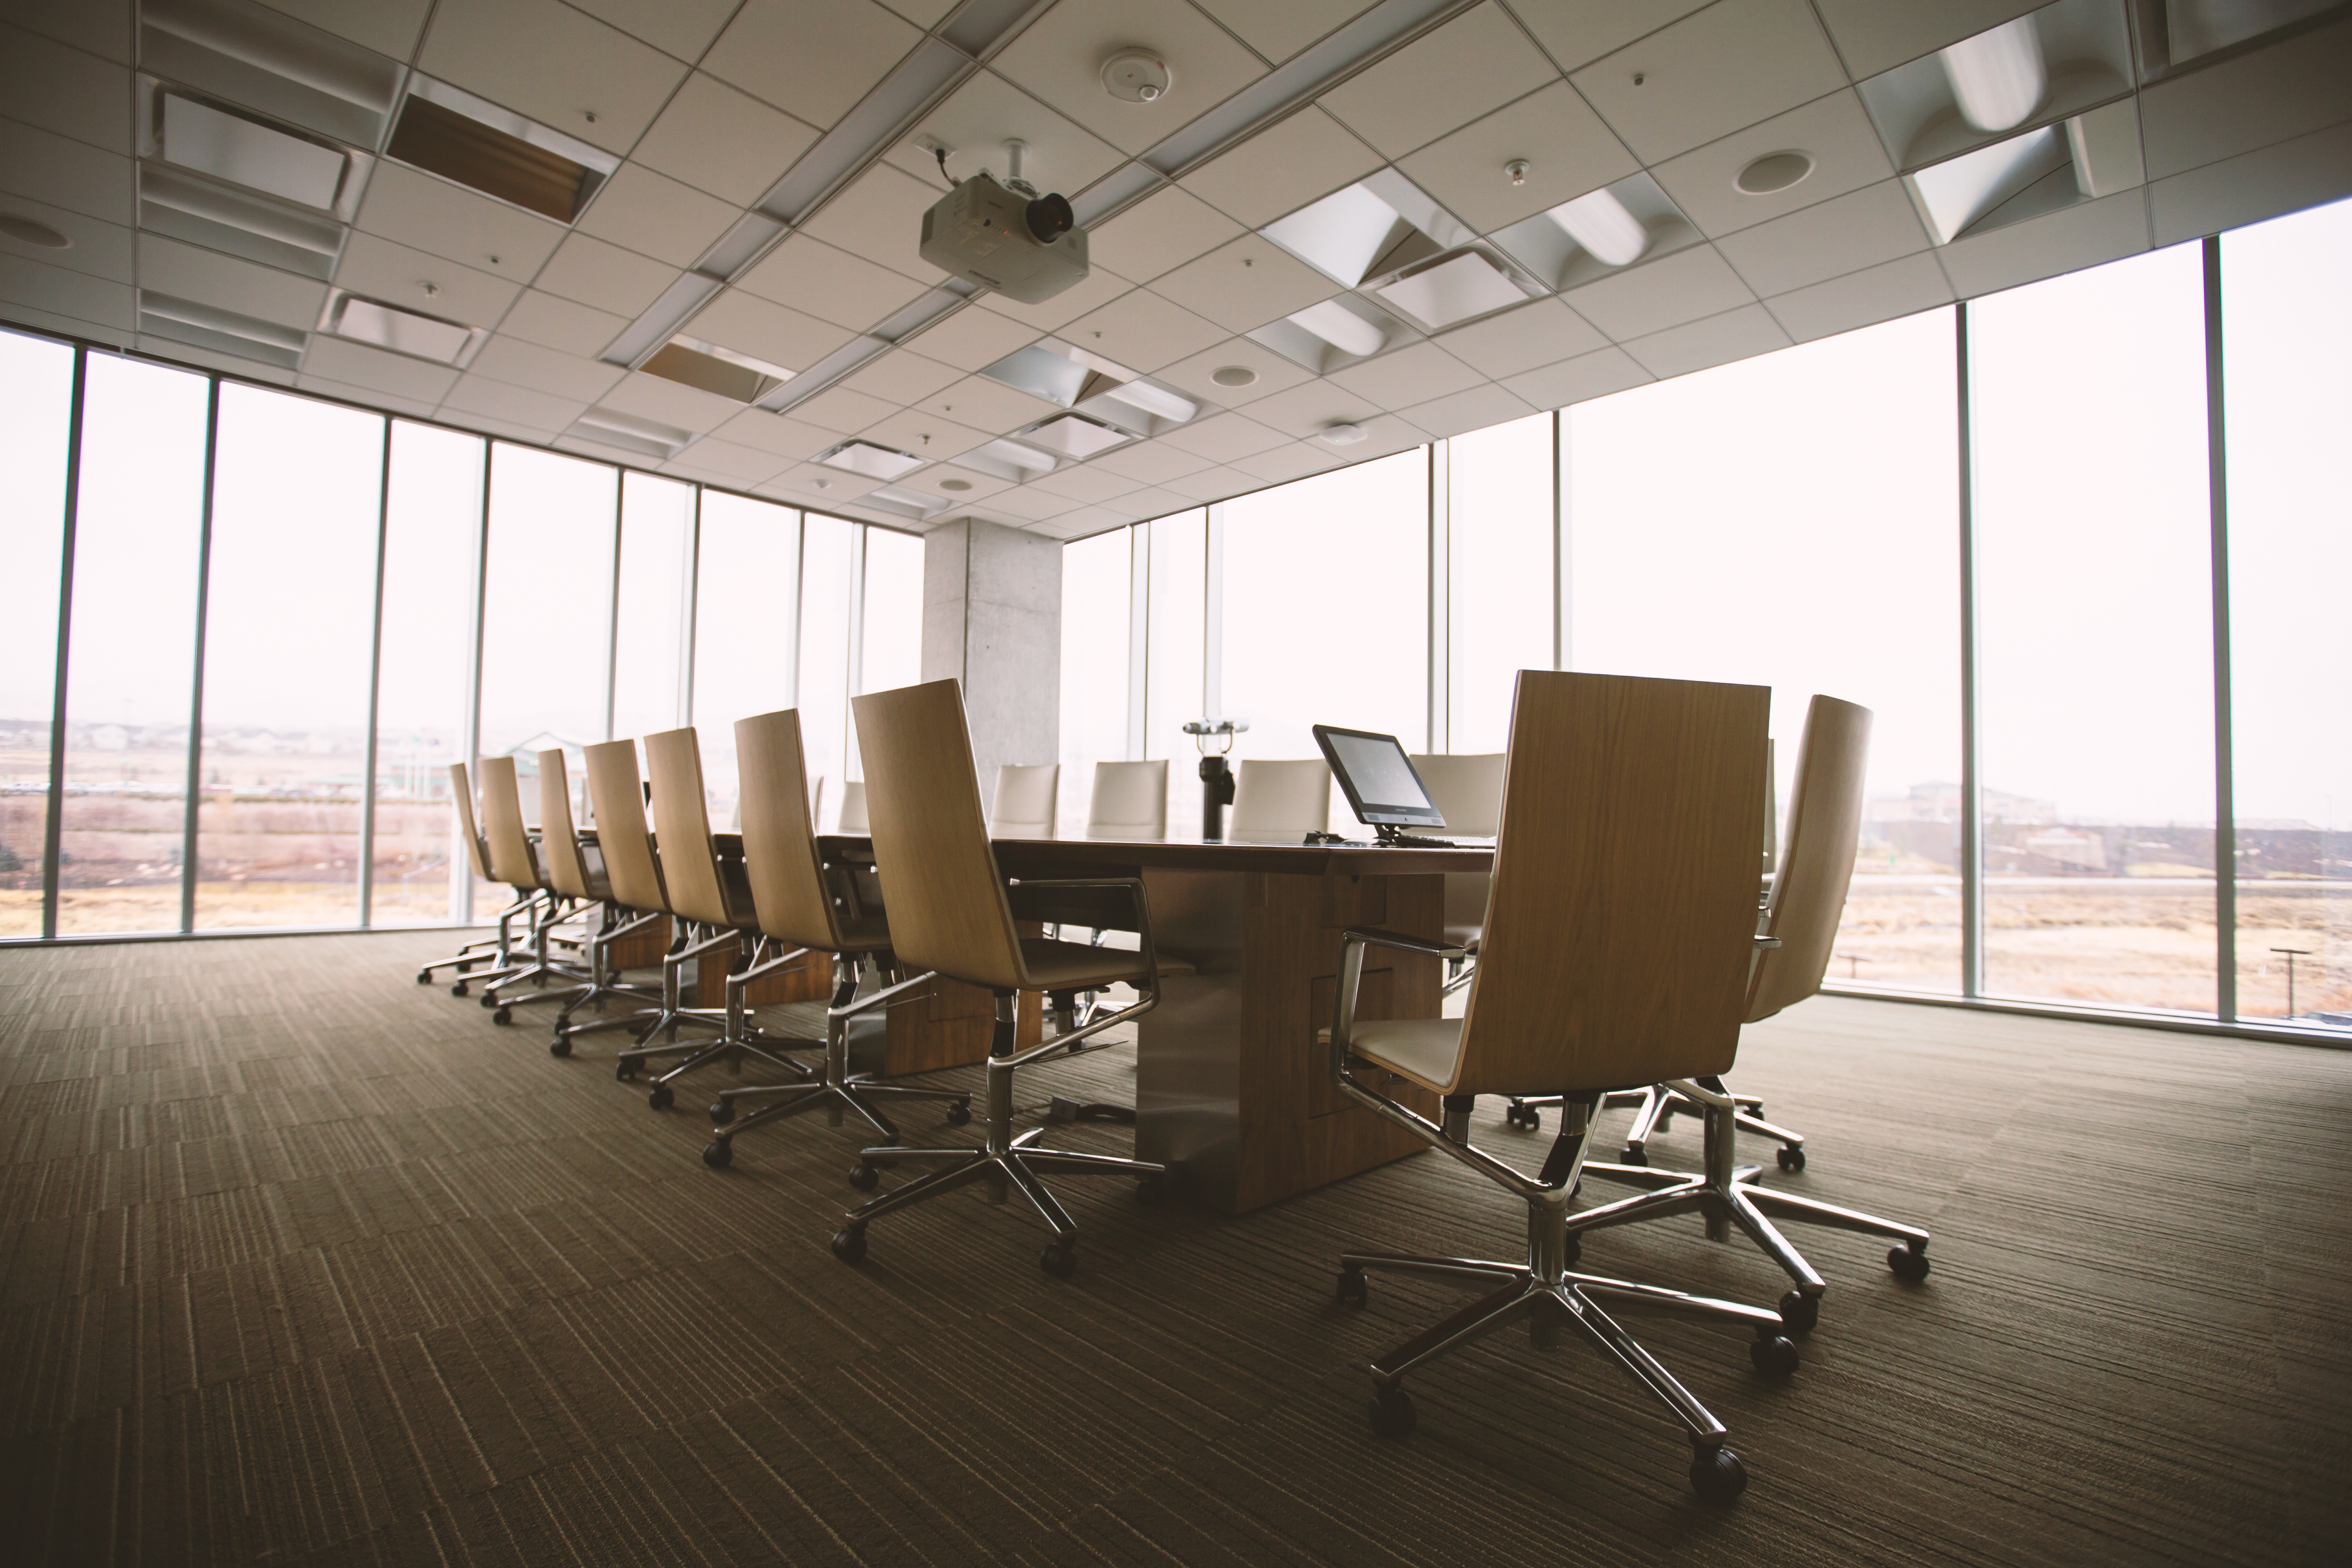 digital signage in conference rooms